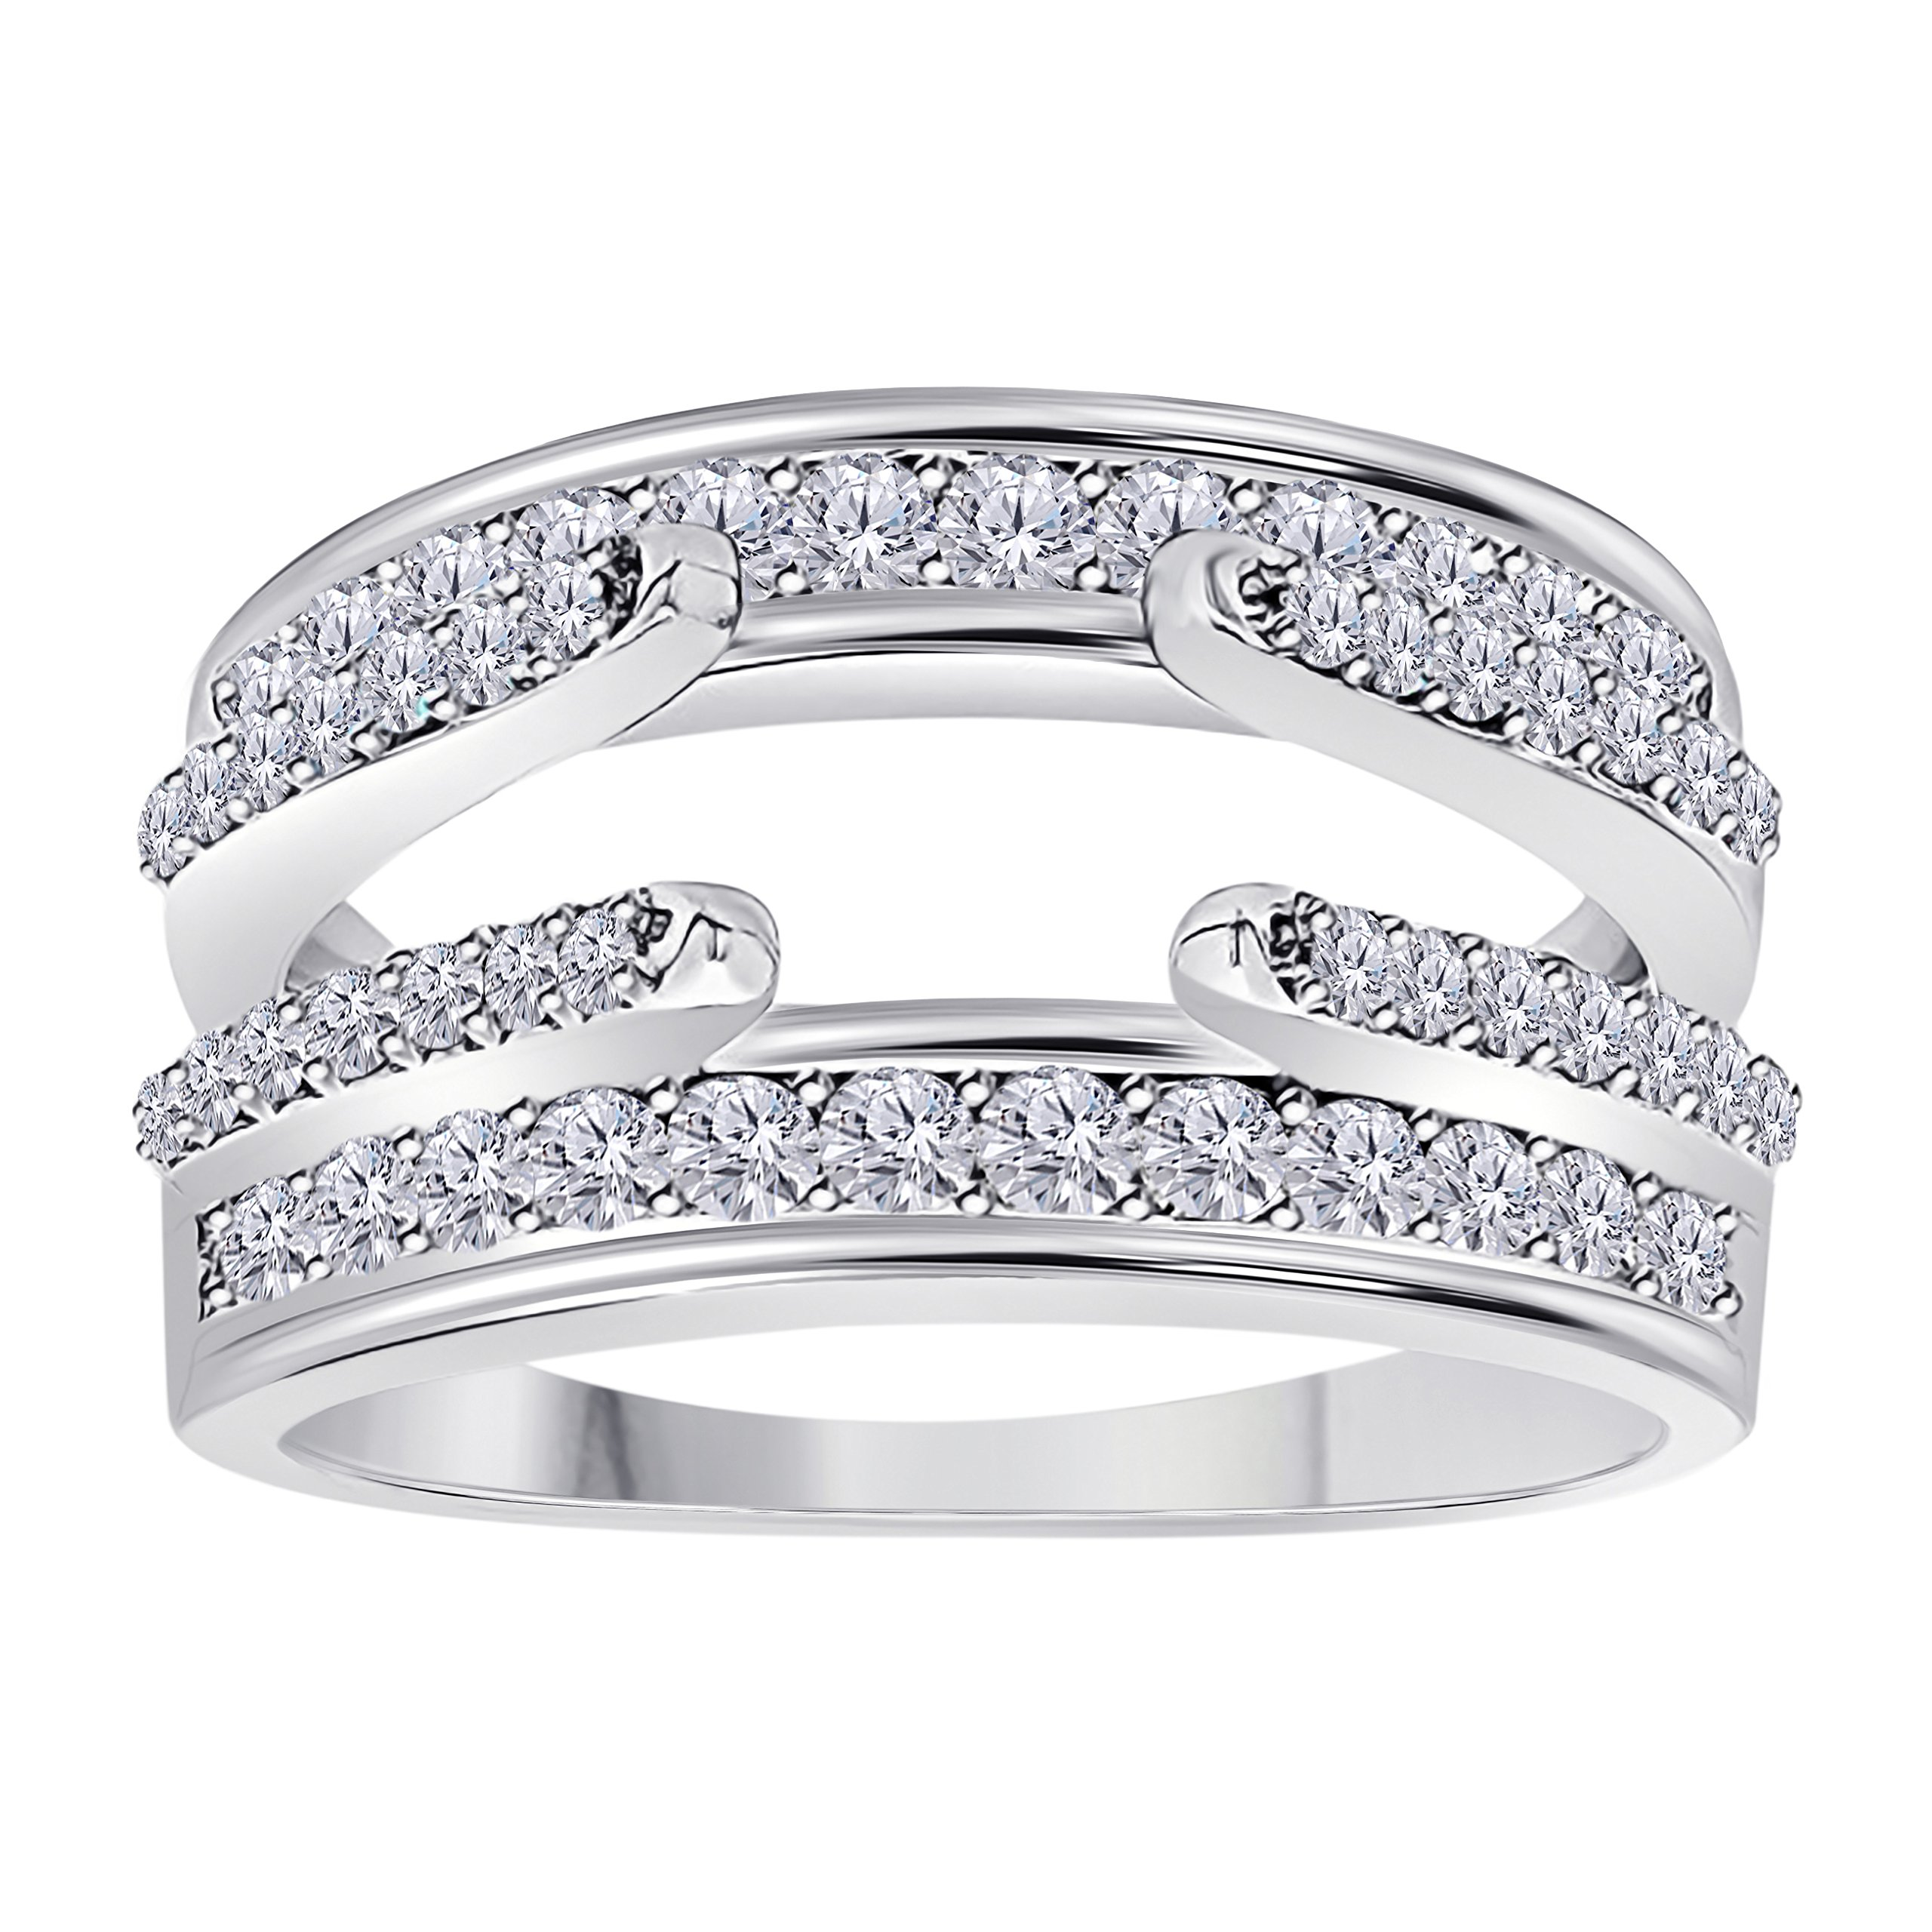 Sterling Silver Plated Combination Curved Style Cathedral Wedding Ring Guard Enhancer with Cubic Zirconia 1.00 Ct